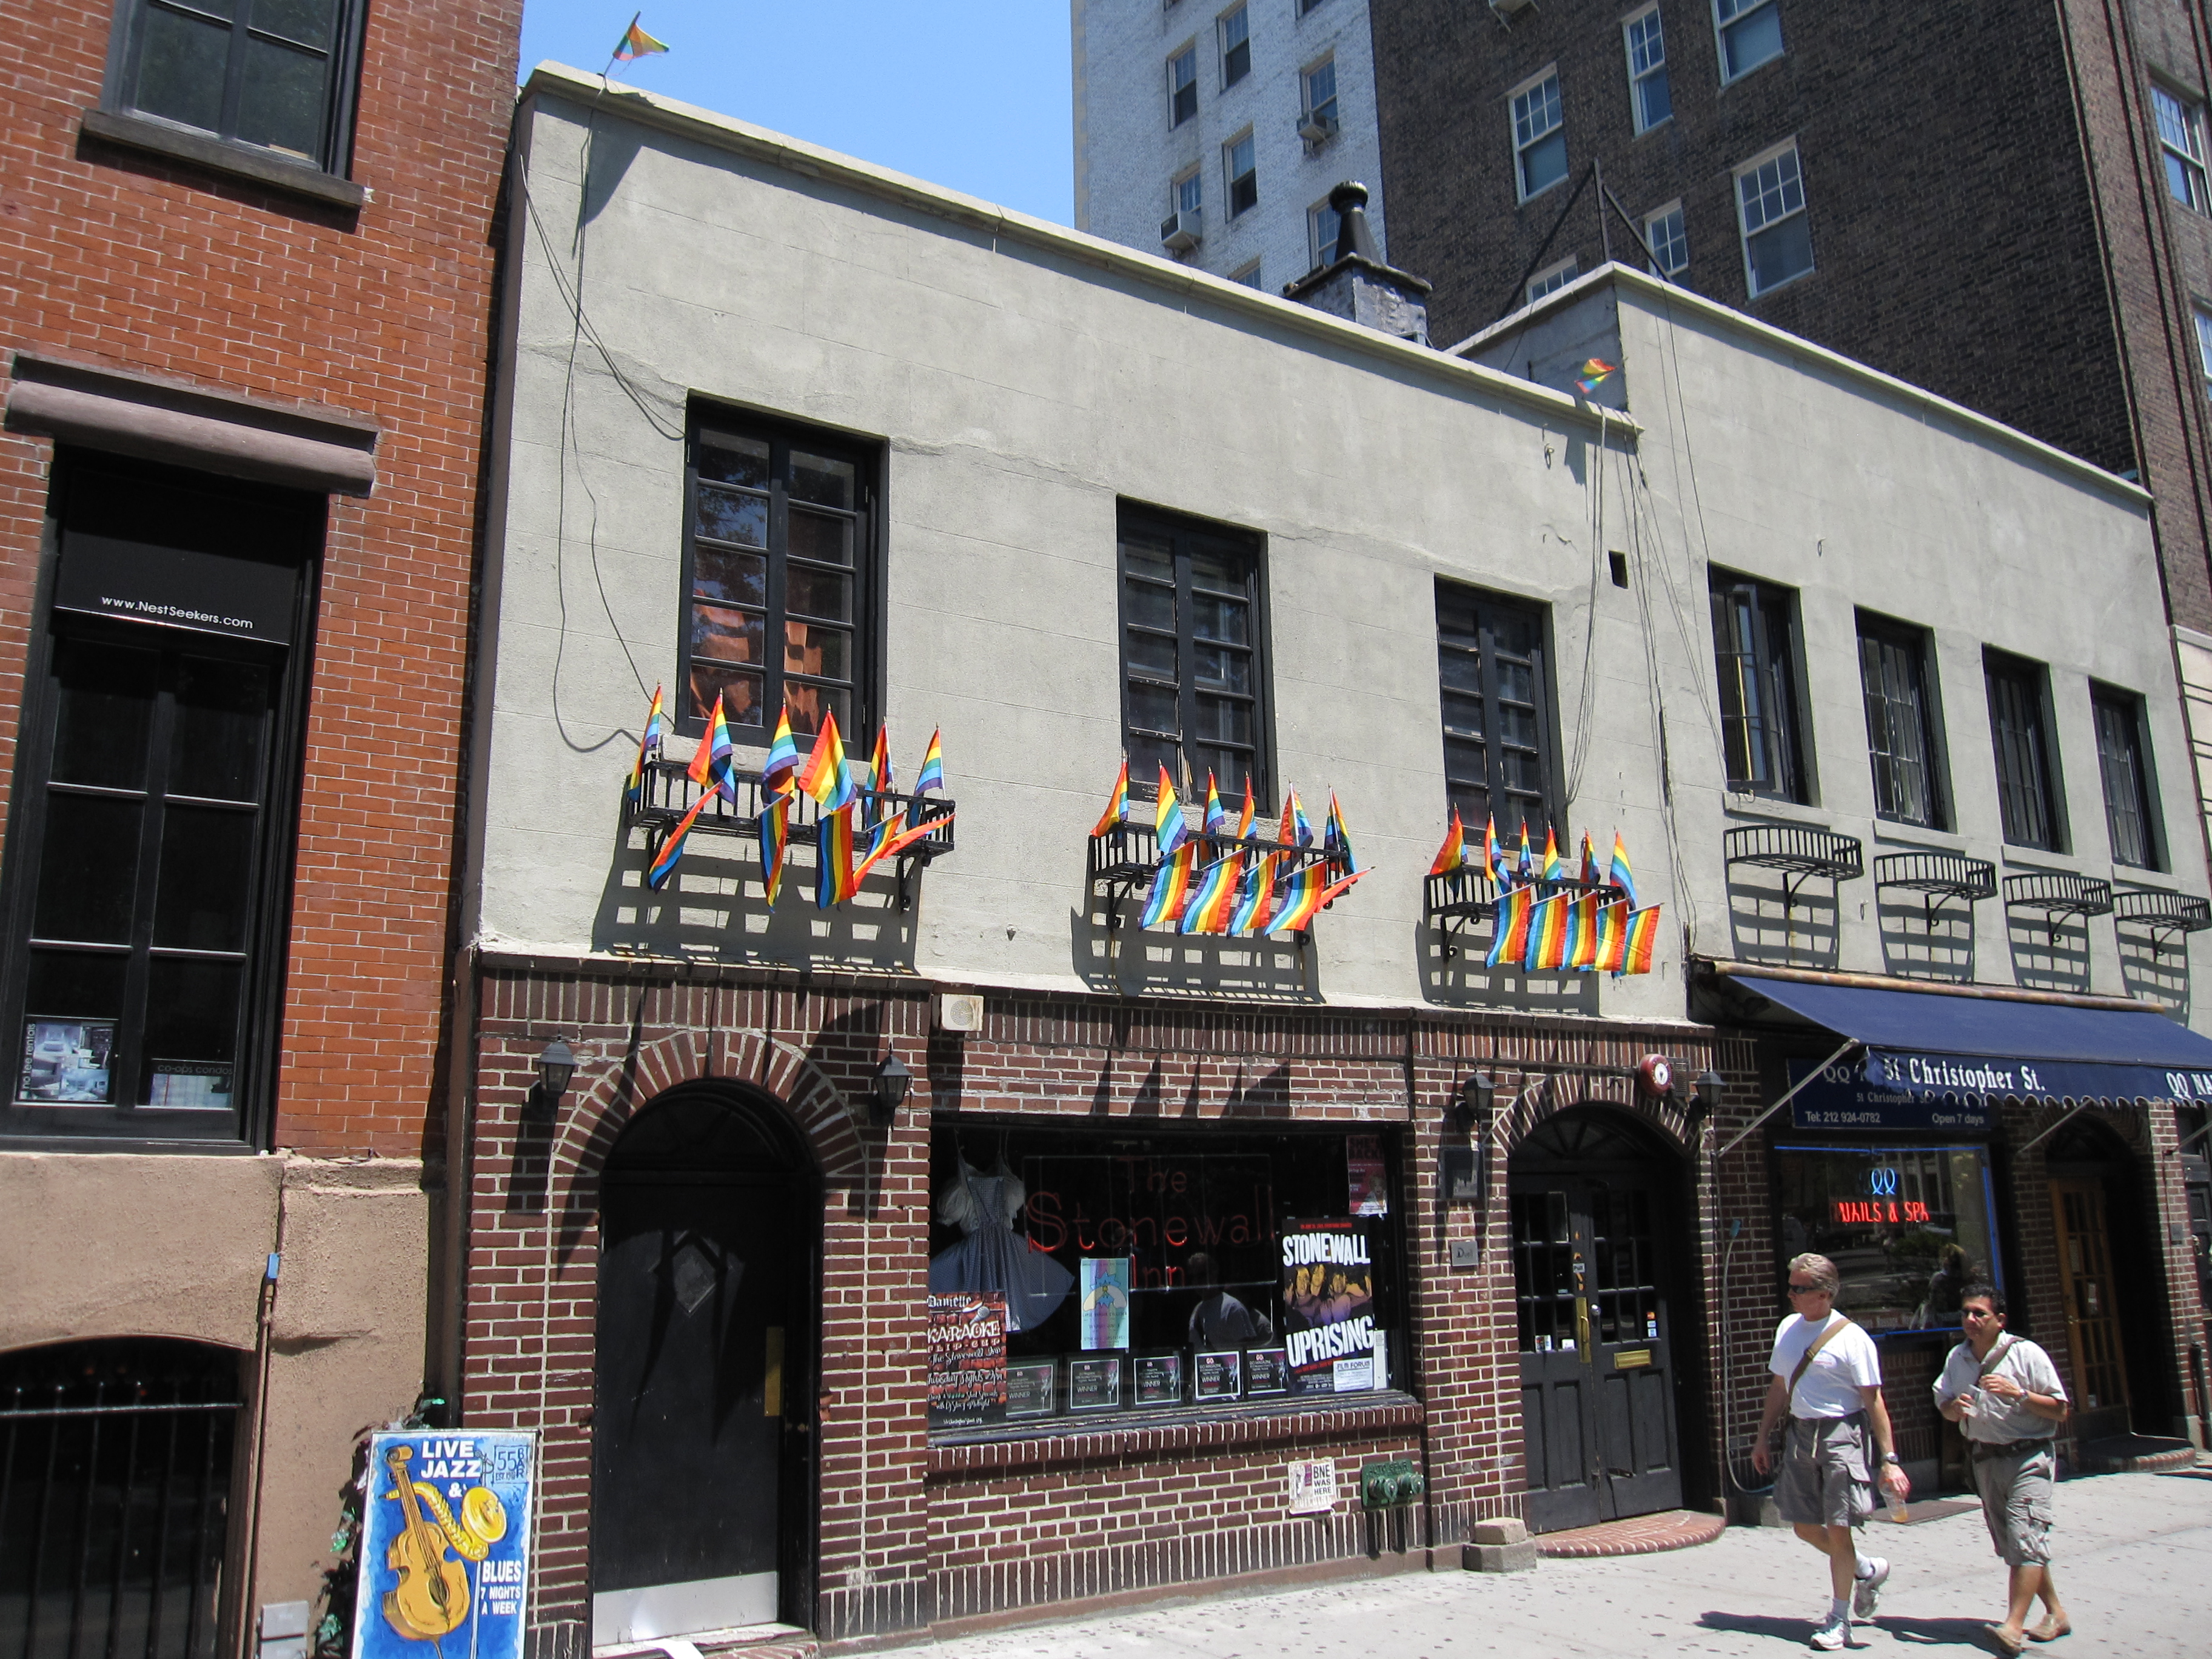 File:Stonewall Inn New York 002.JPG - Wikimedia Commons